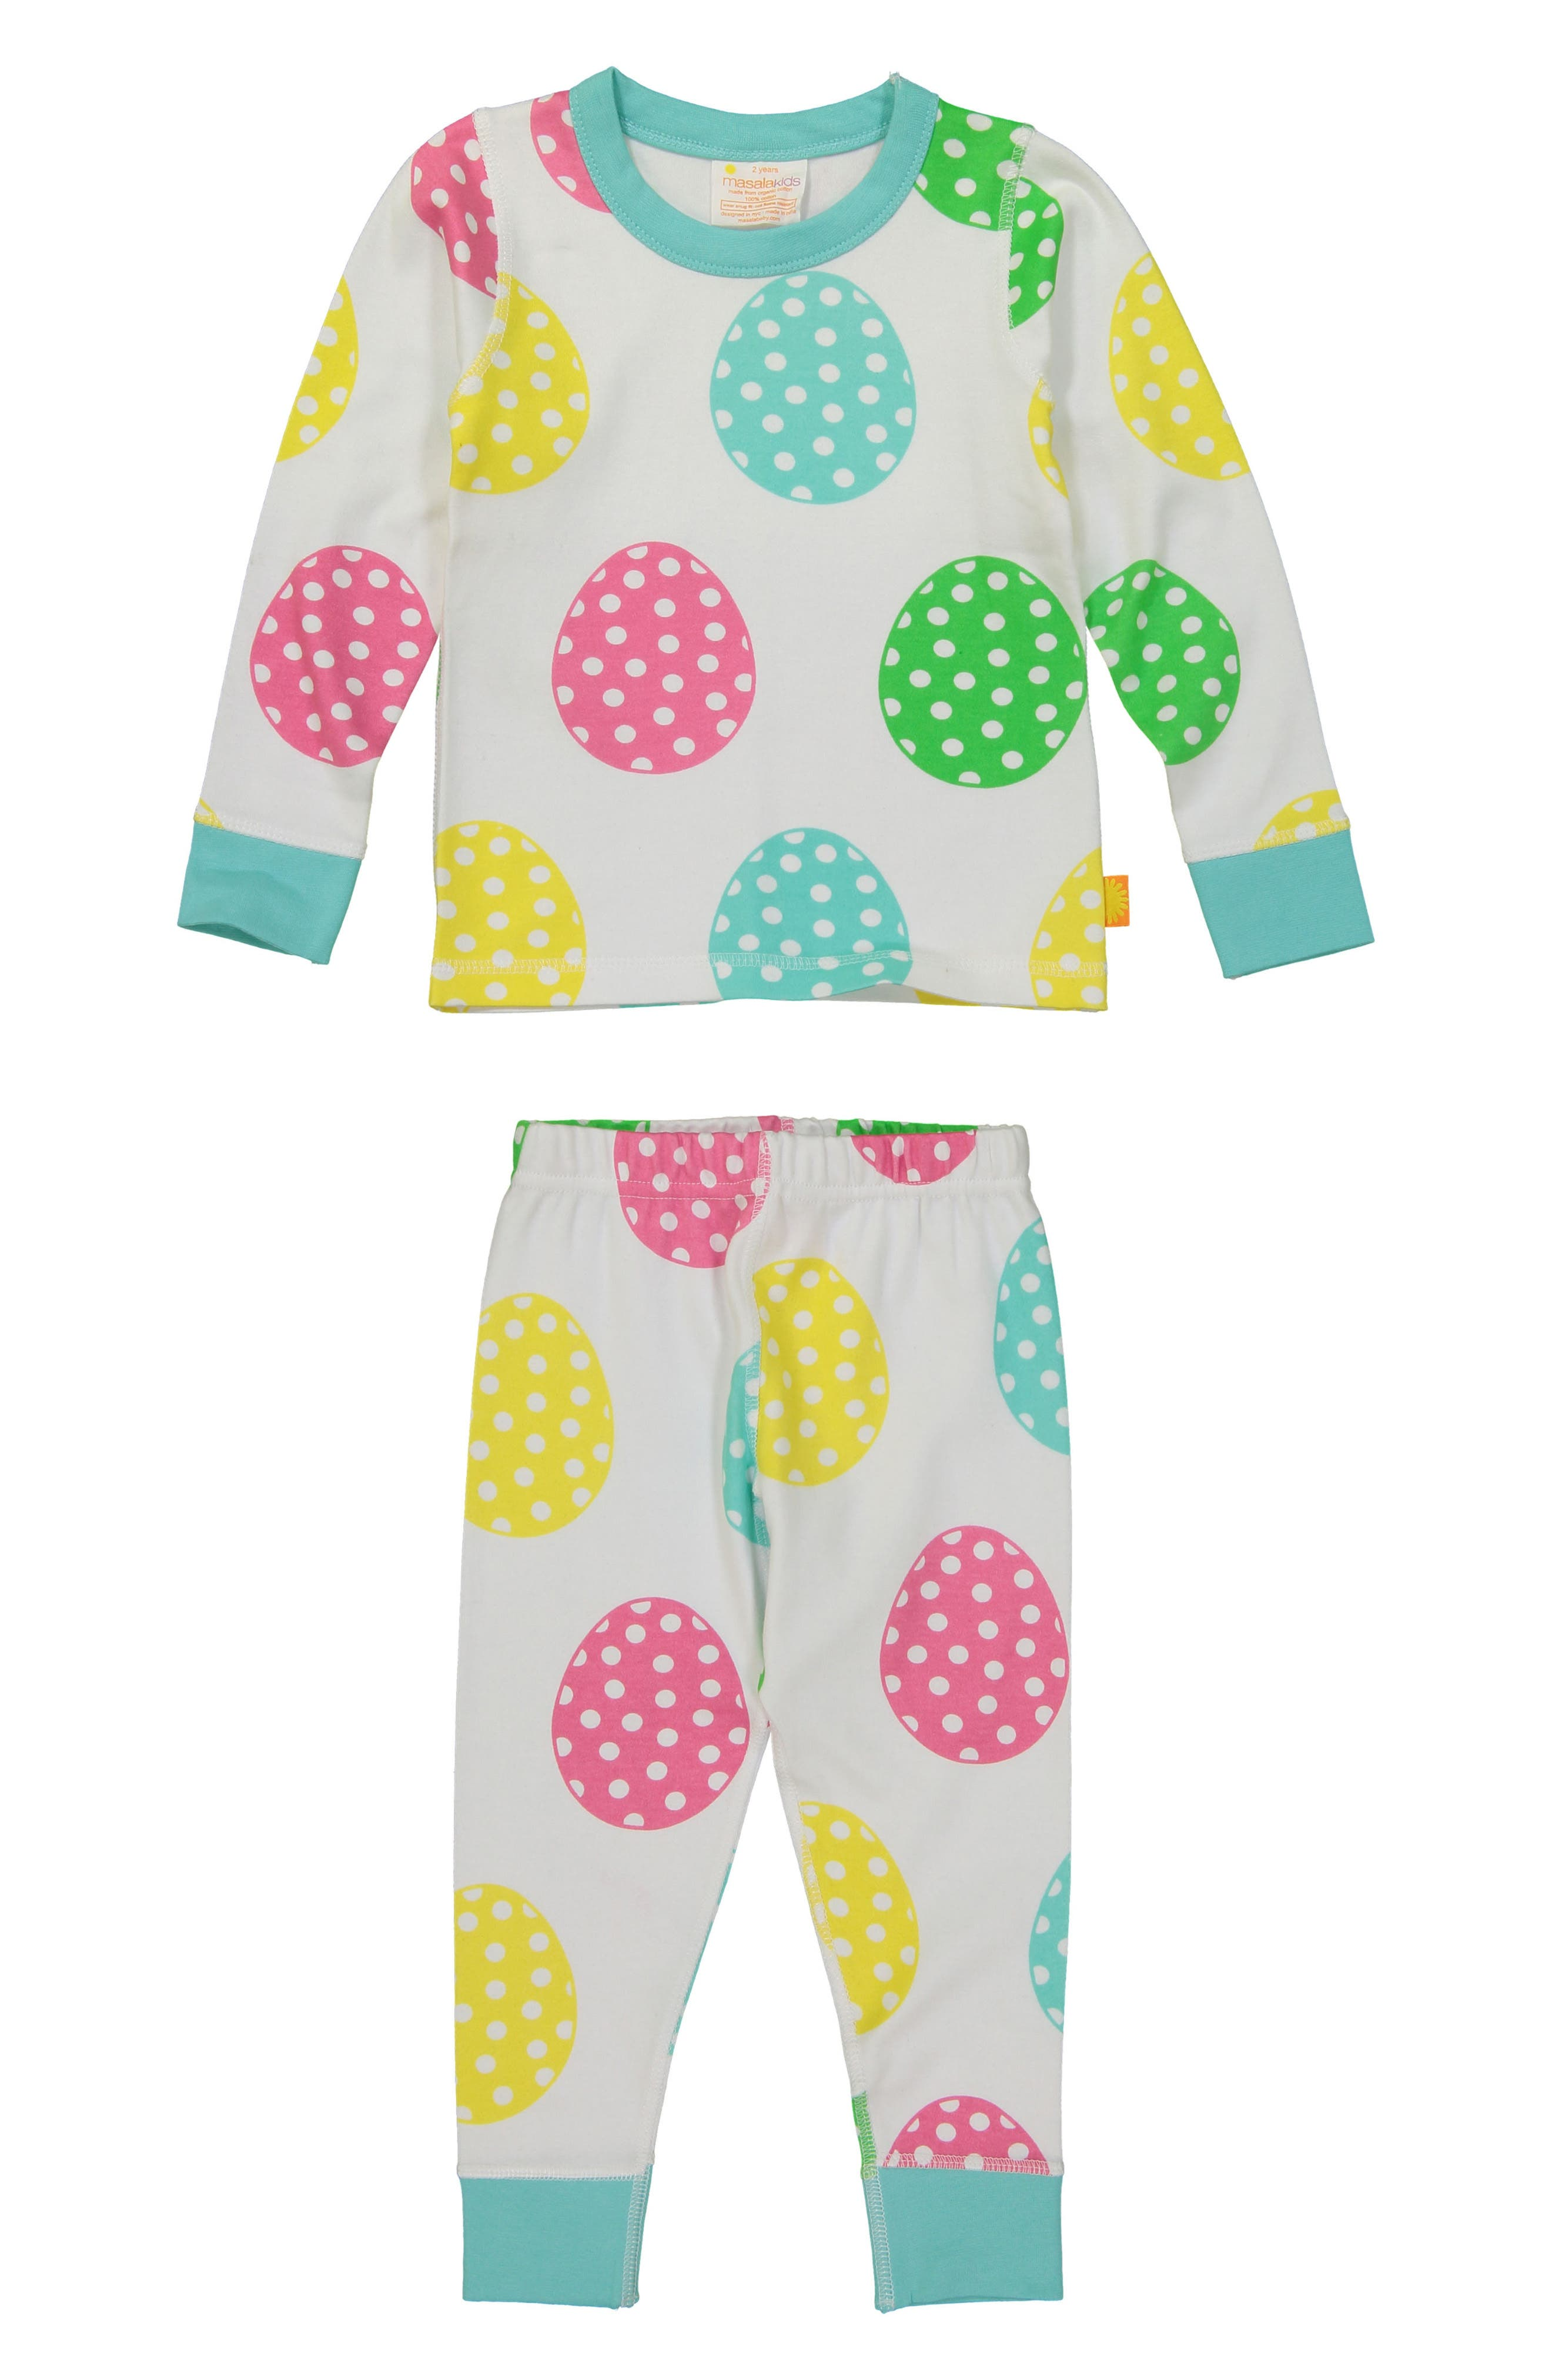 Rainbow Fitted Two-Piece Organic Cotton Pajamas,                             Main thumbnail 1, color,                             160